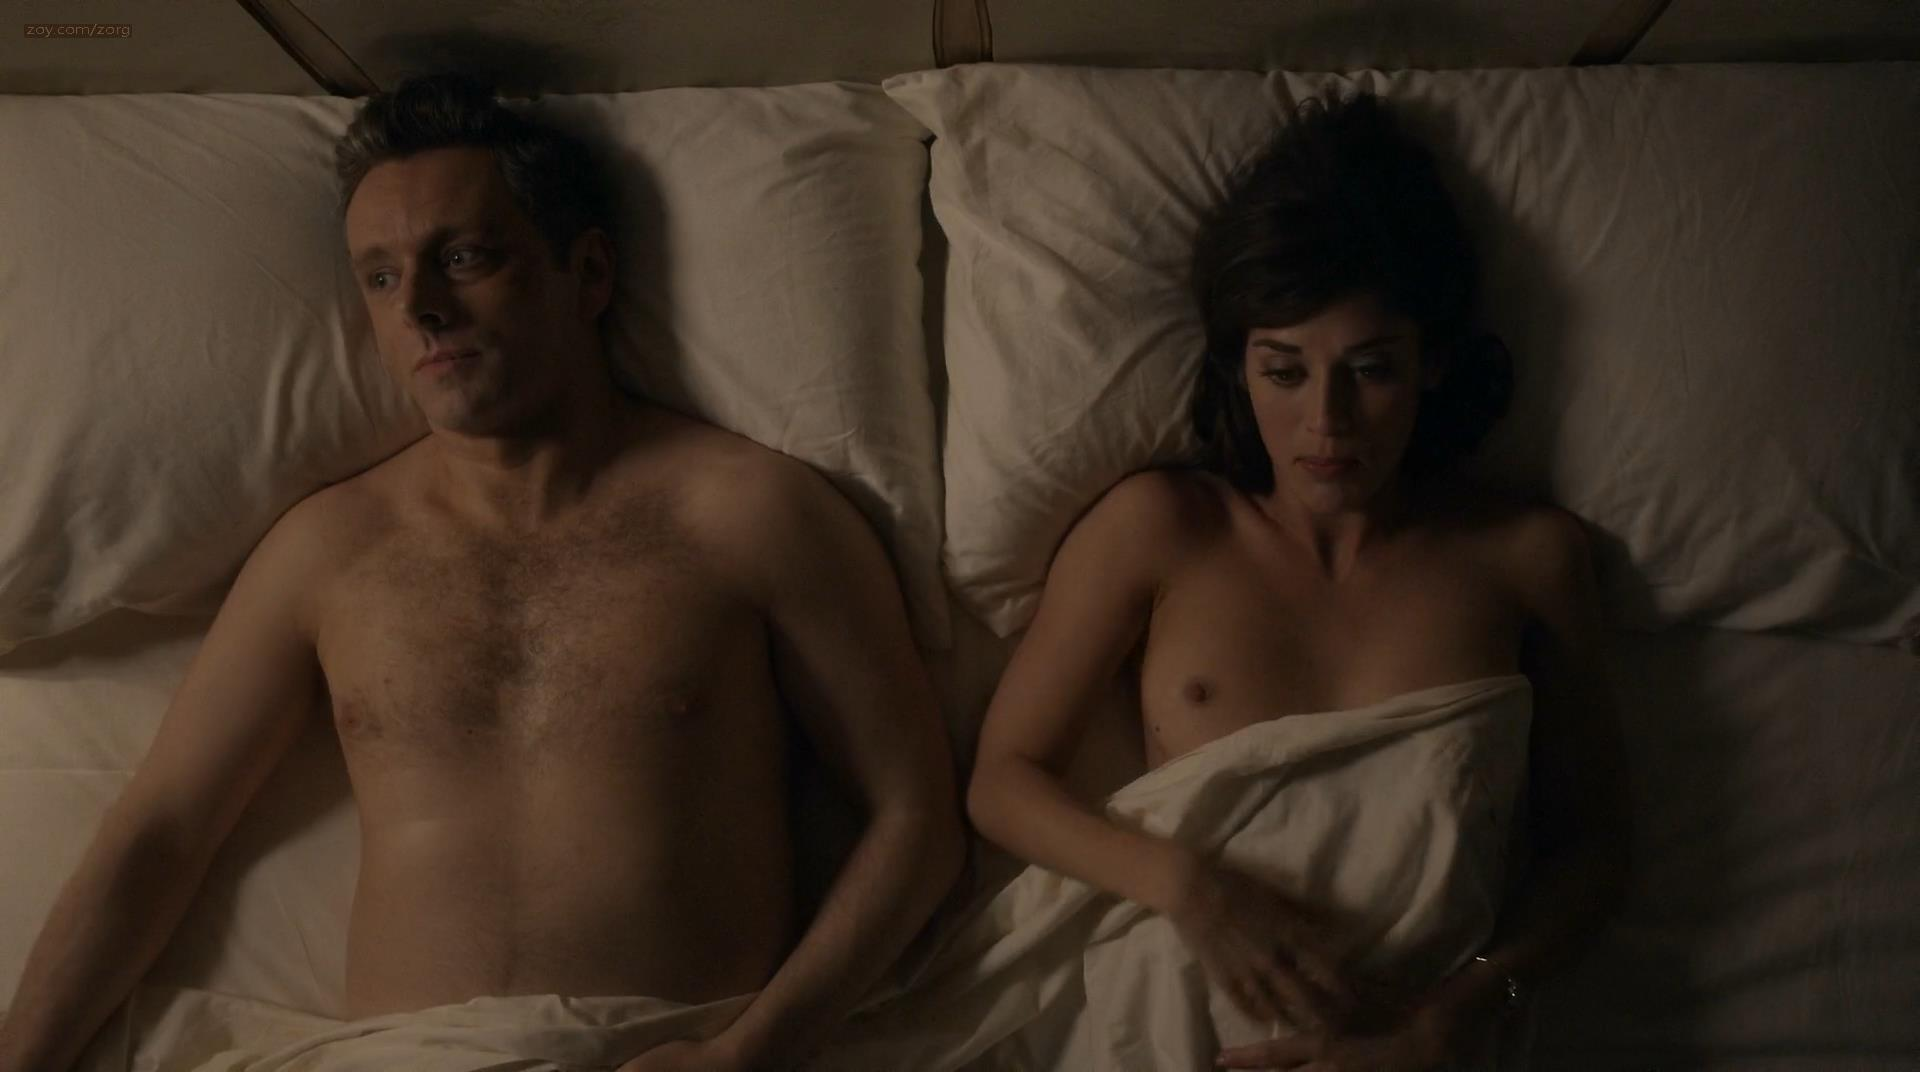 image Nudes of masters of sex season 2 lizzy caplan and co